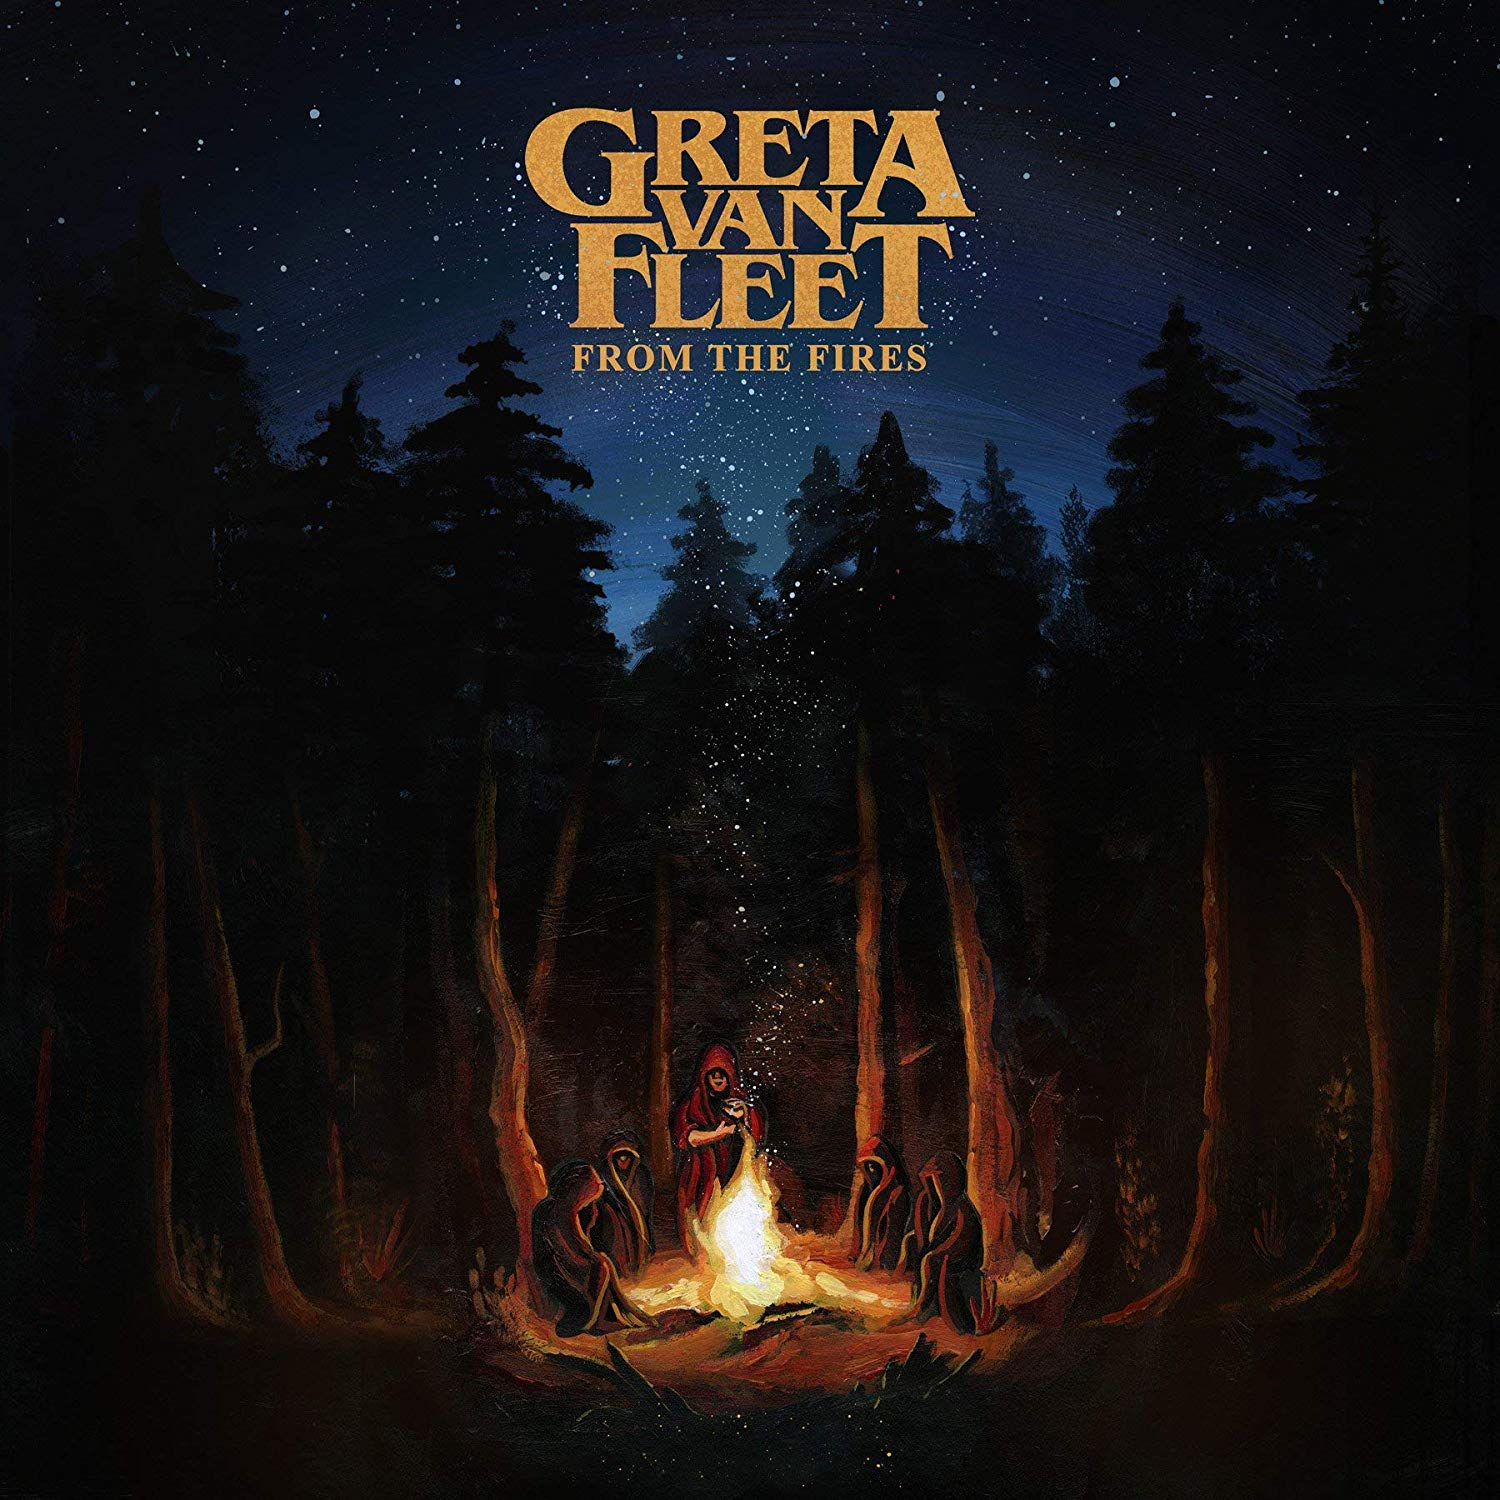 Greta Van Fleet - From The Fires [LP] (RSD BF 2019)